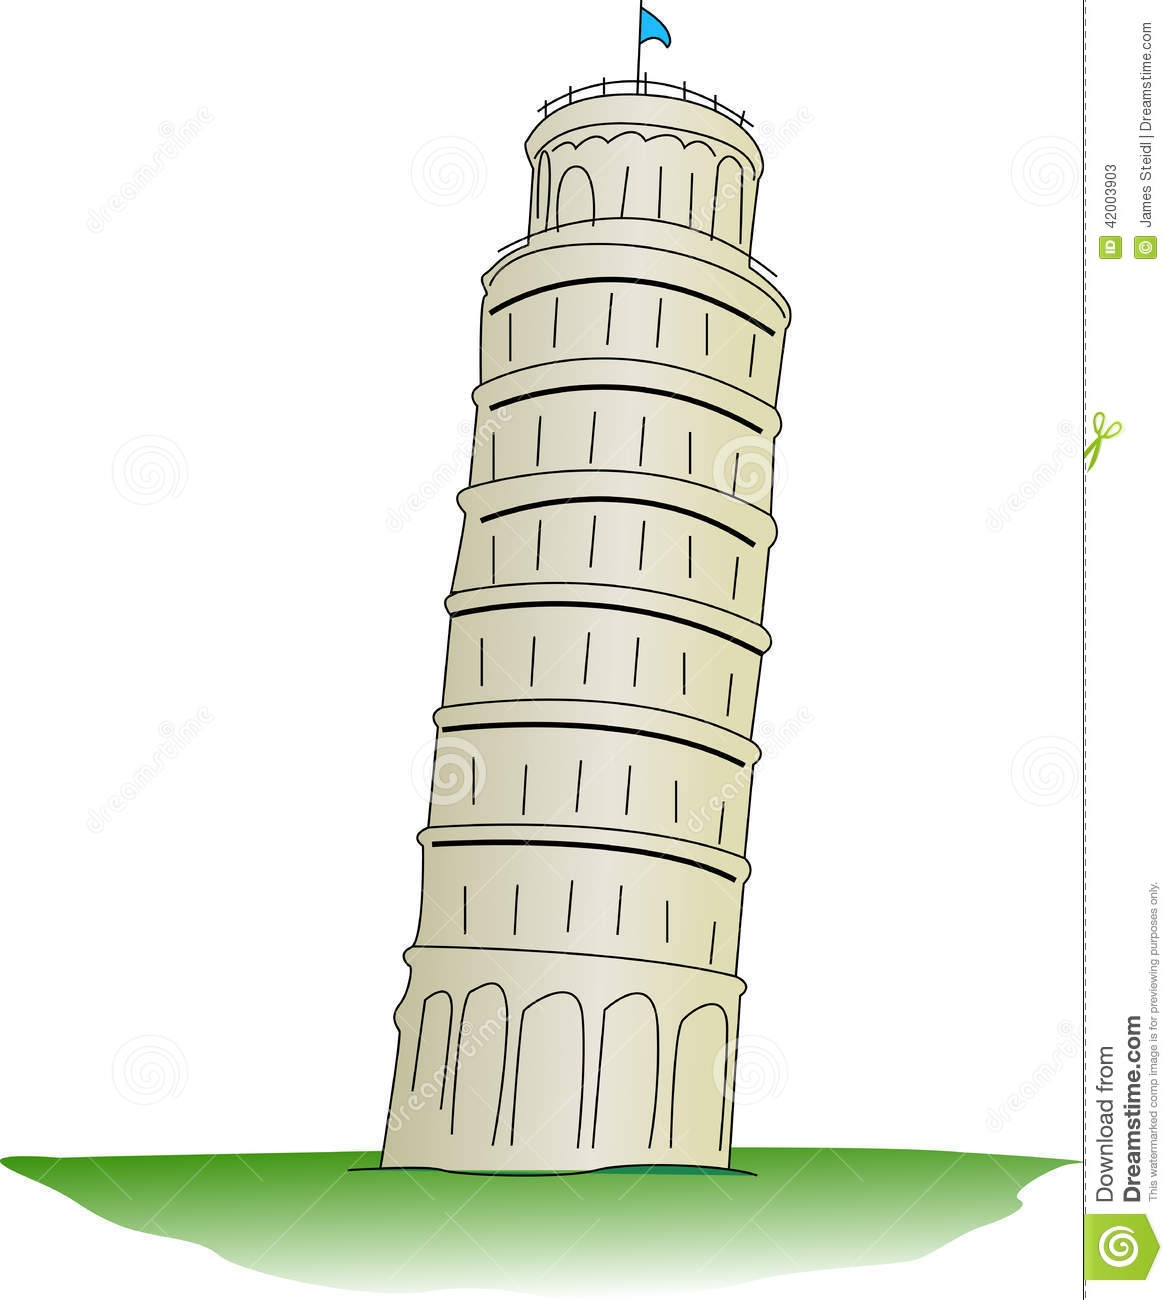 Tower clipart pisa tower #2